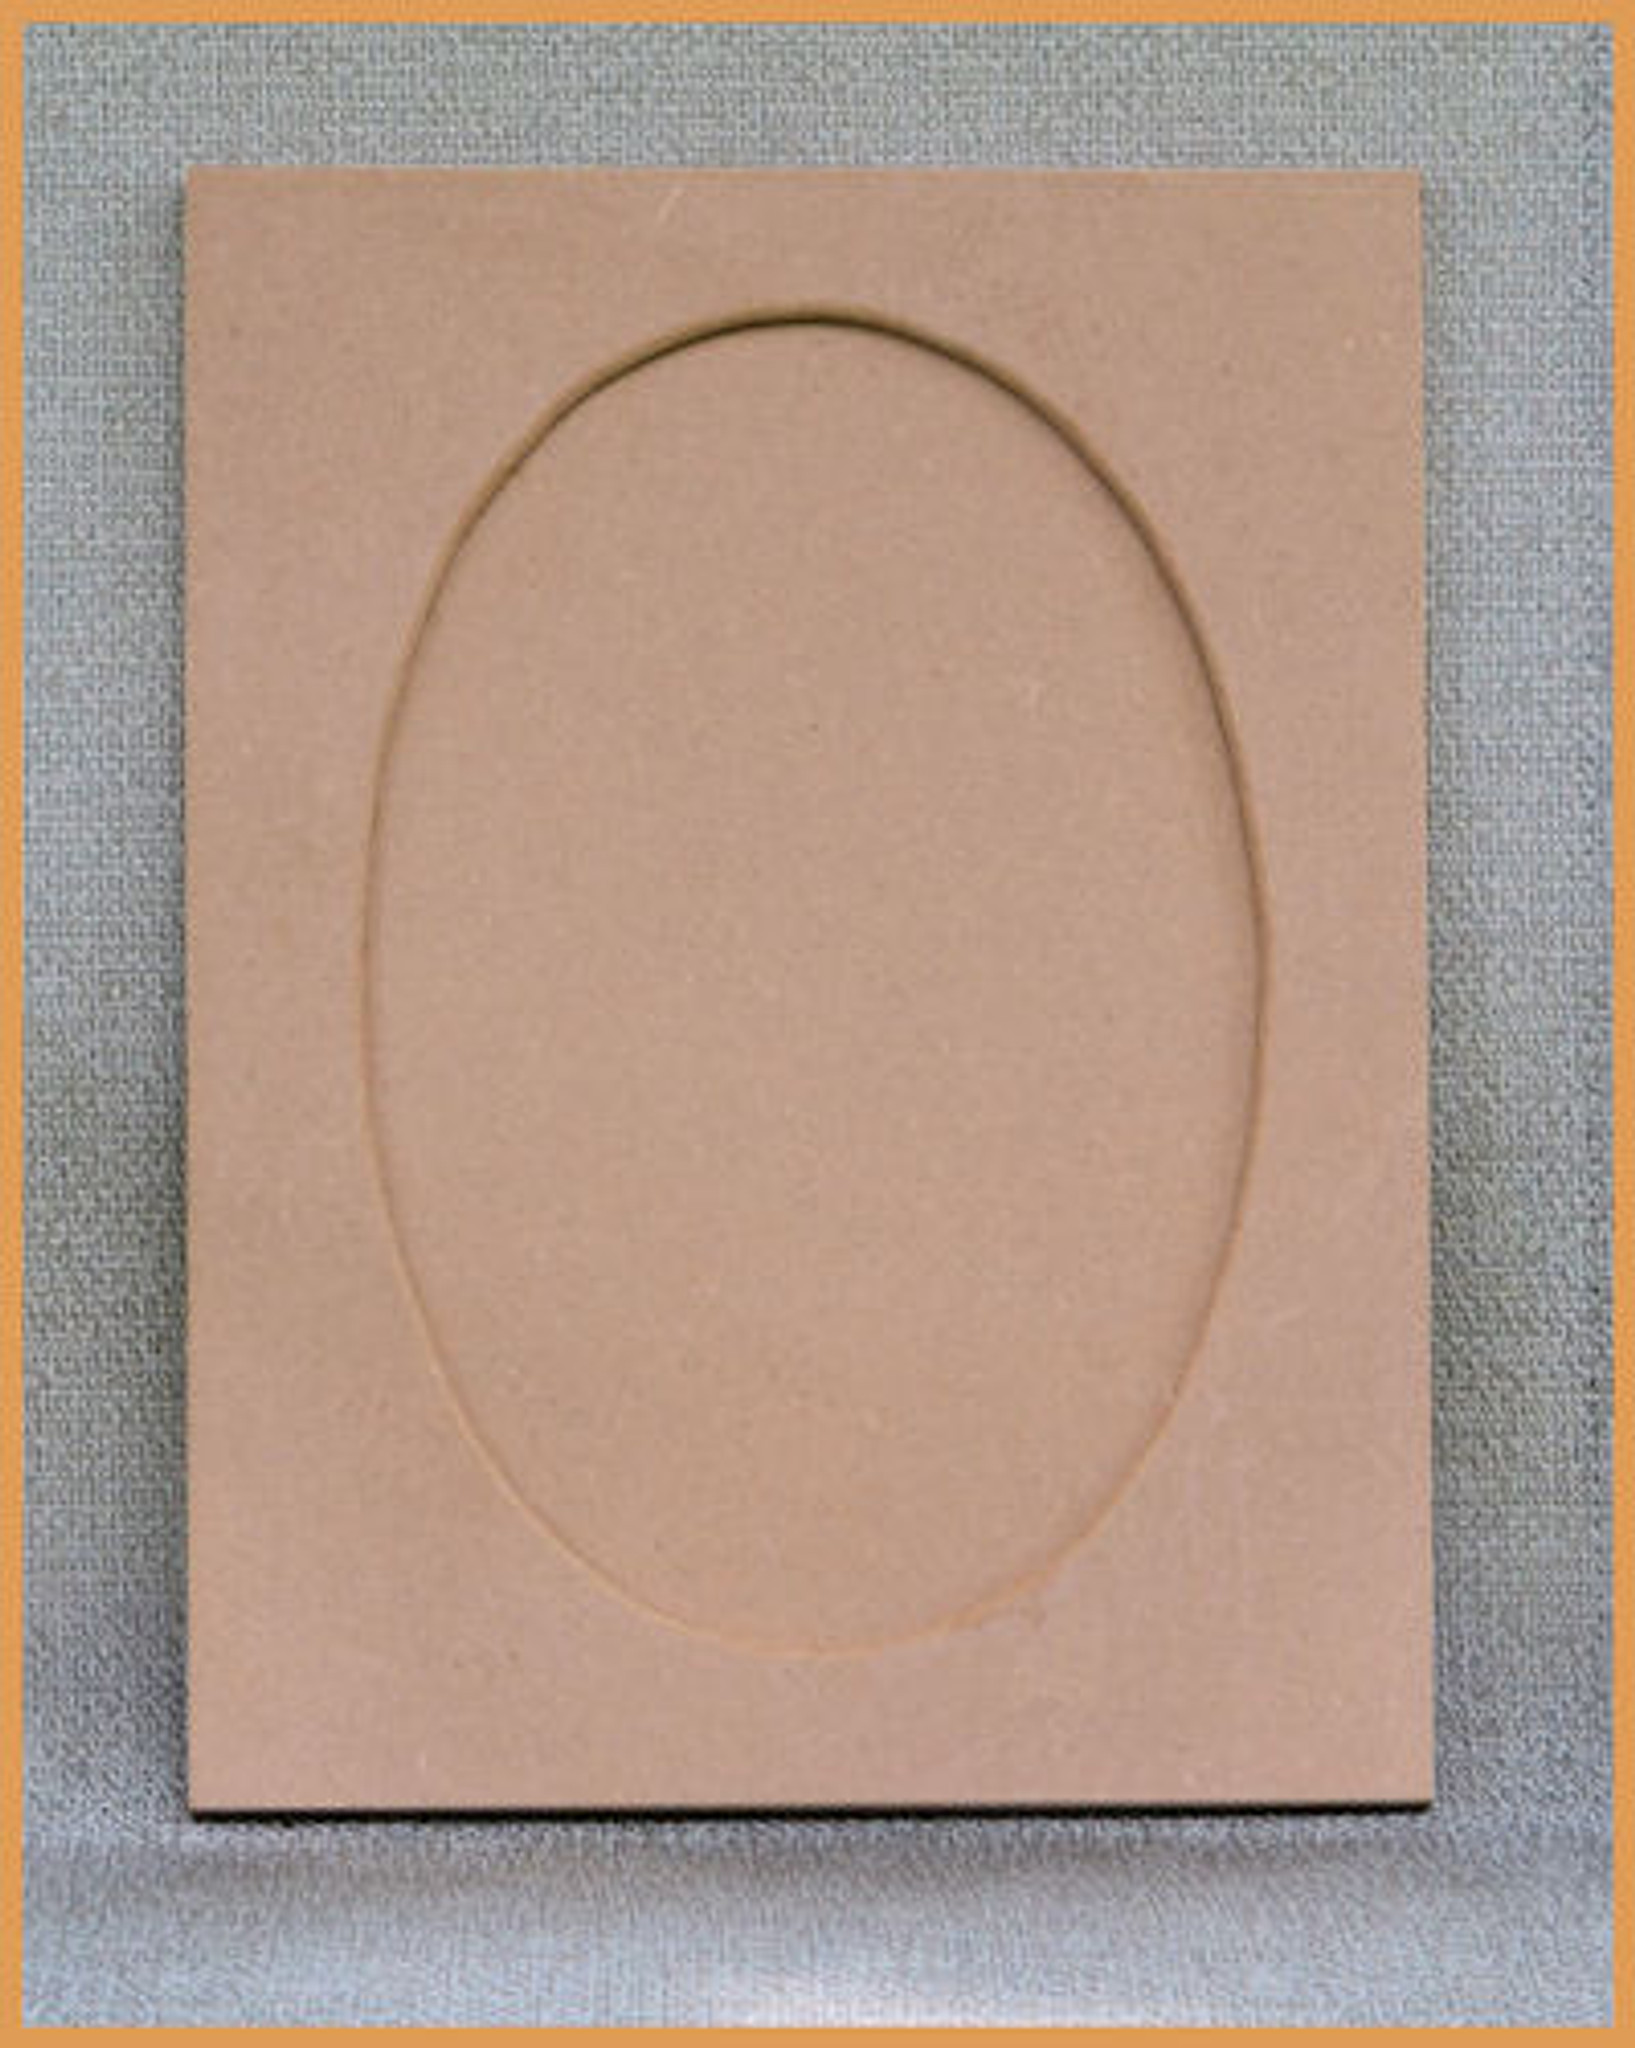 Wood Rectangular Mdf Frame 16 X 12 With Oval Overlay 19236001 List Price 1600